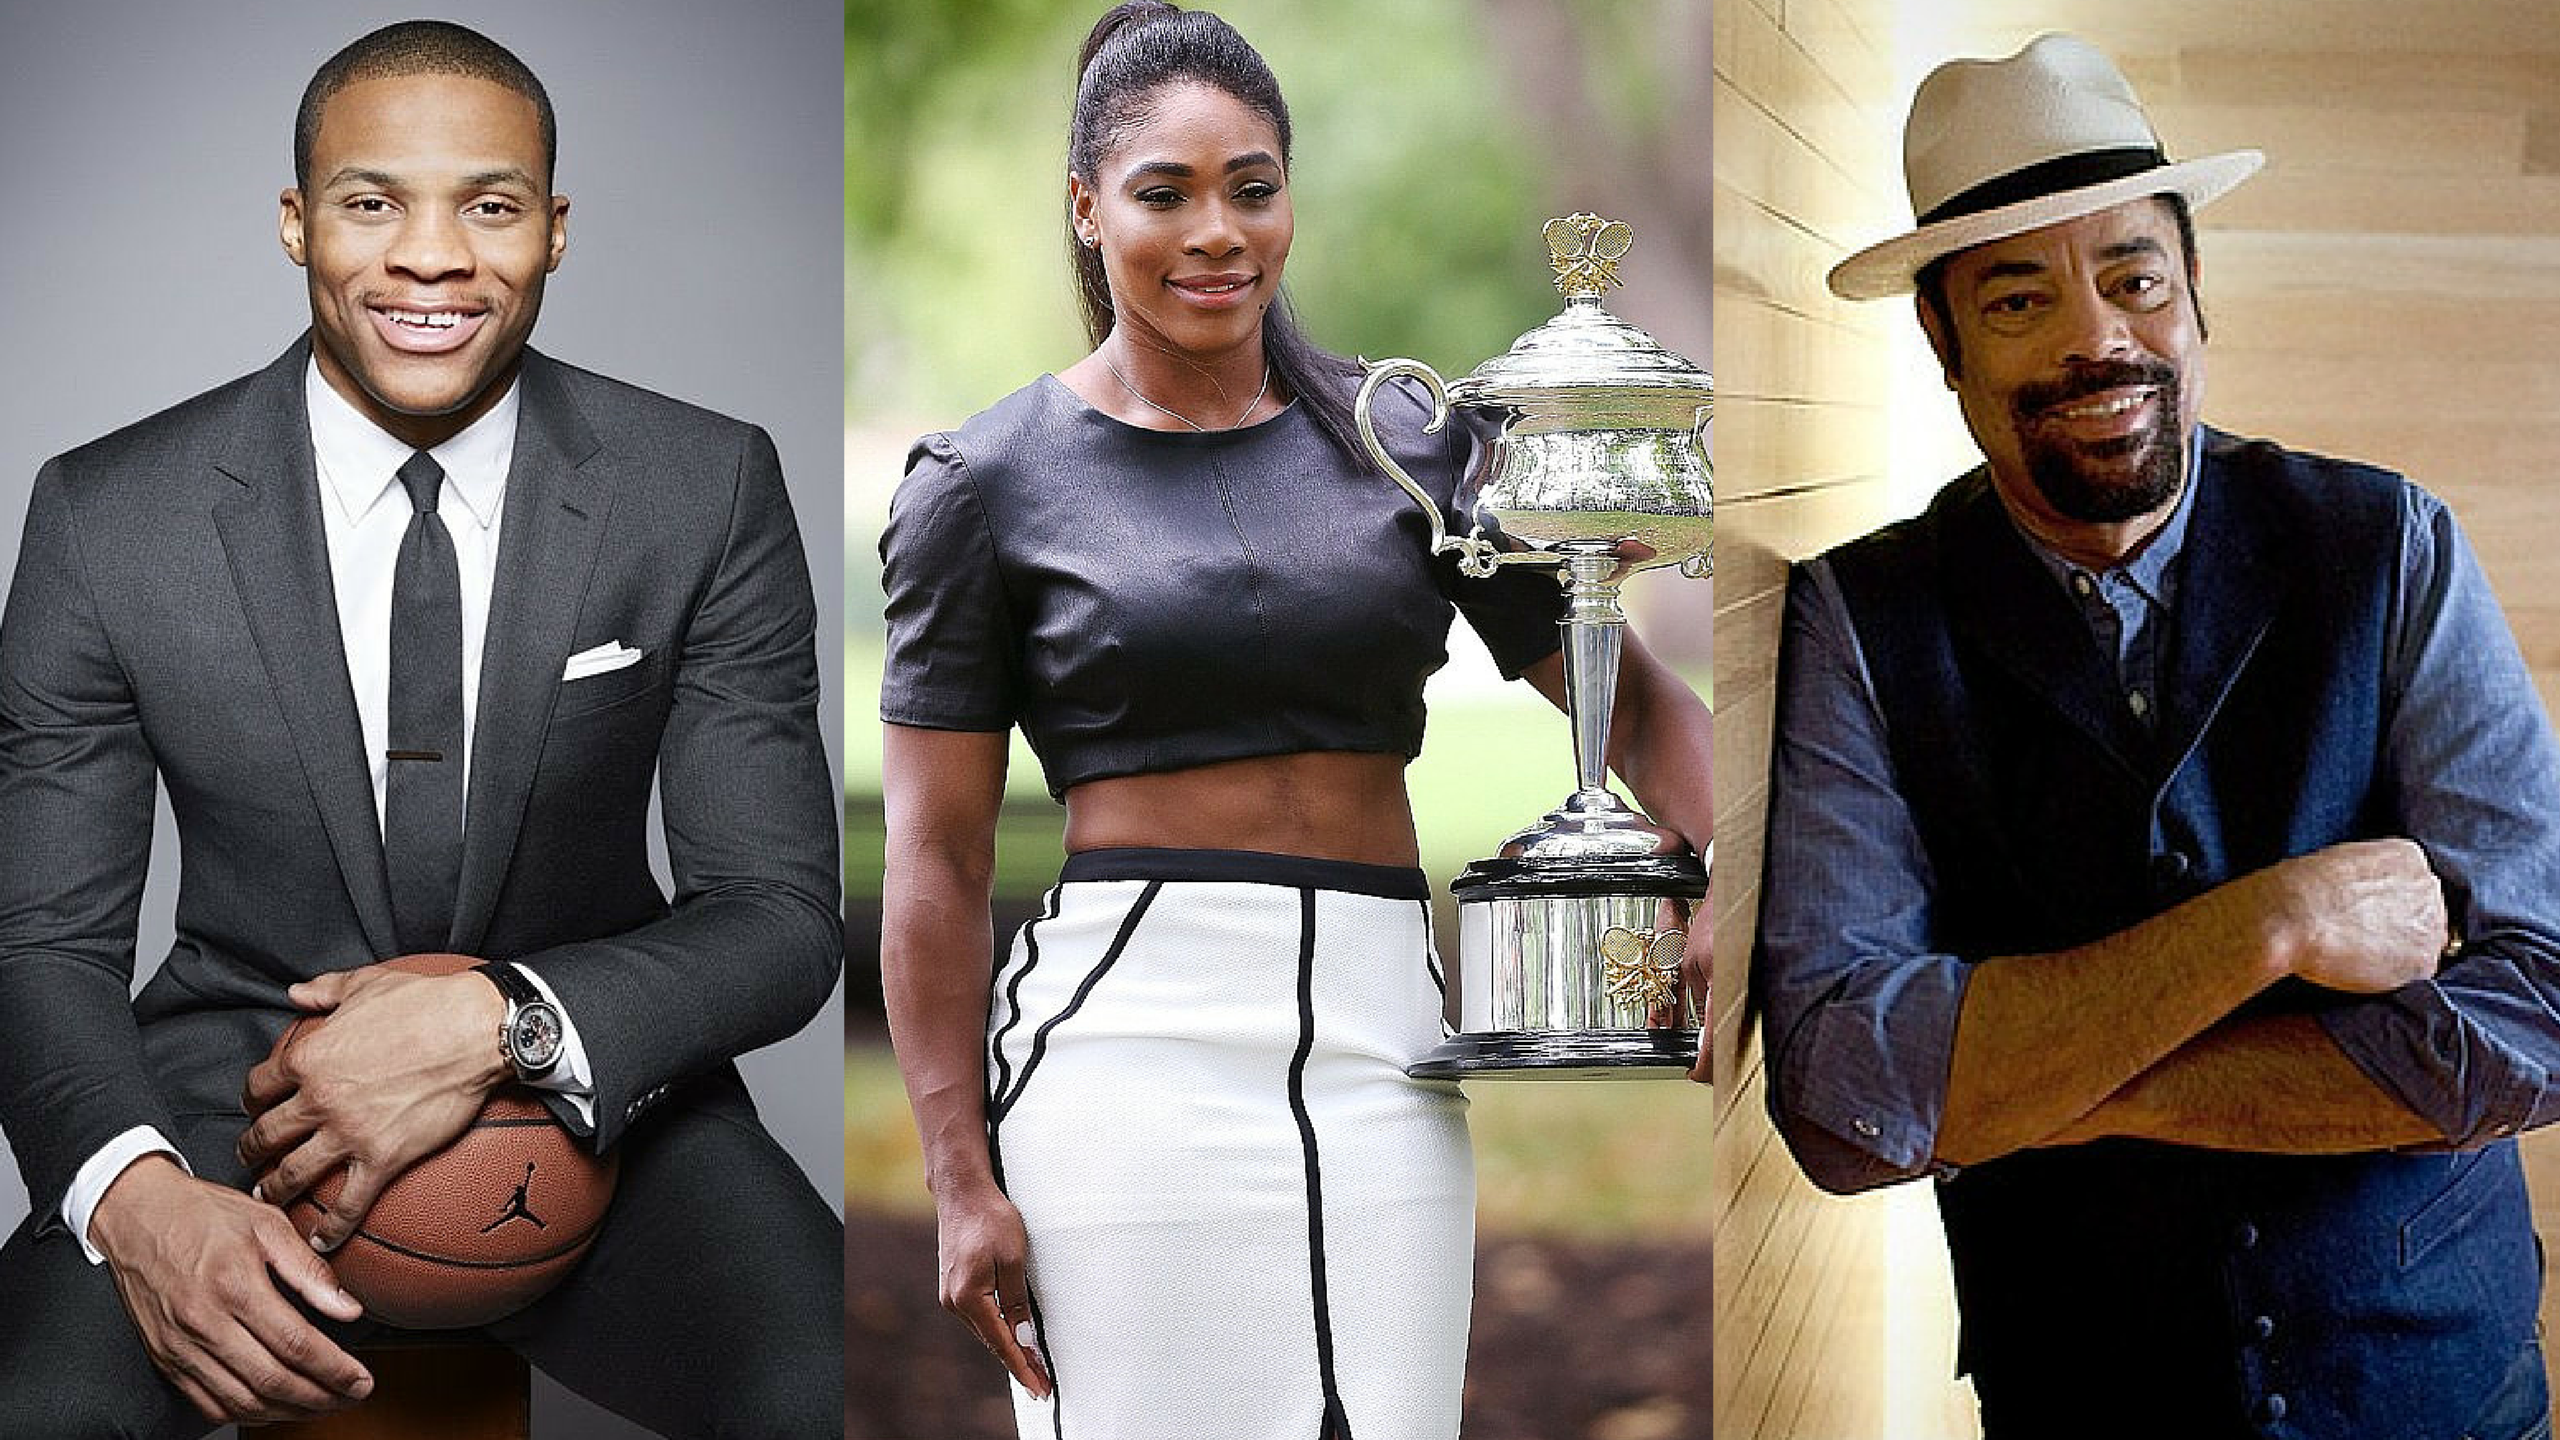 vice sports, russell westbrook, serena williams, clyde frazier